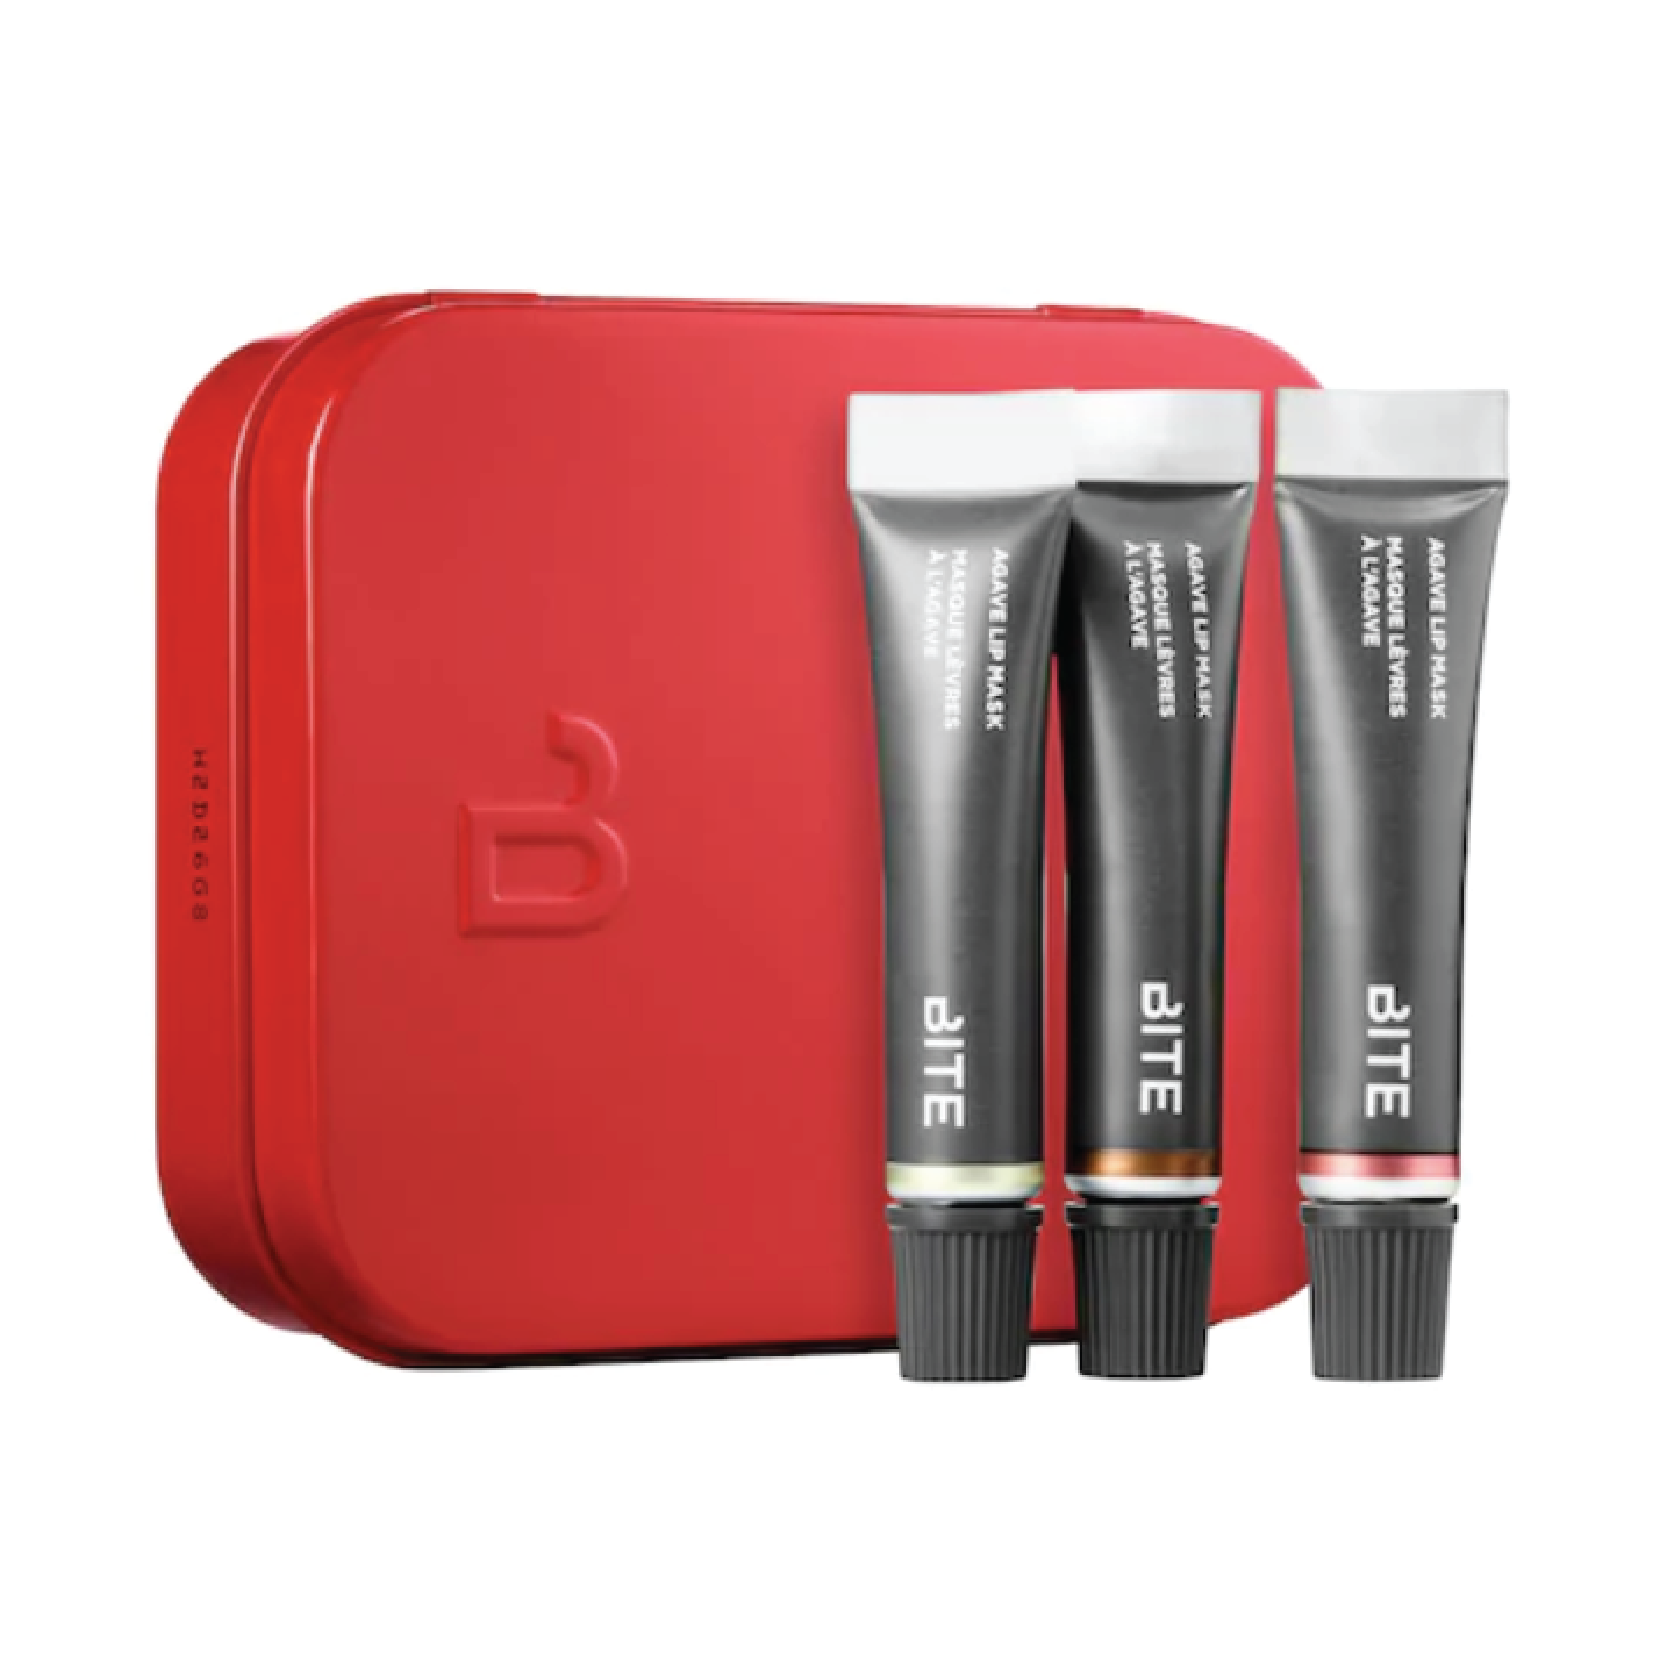 Bite Beauty Agave Treat Trio Mini Set - $18 at SephoraThese agave lip masks are cult favorites among beauty lovers. If you have someone who loves holiday-scented products, the addition of this candy cane lip mask is the perfect tiny gift.